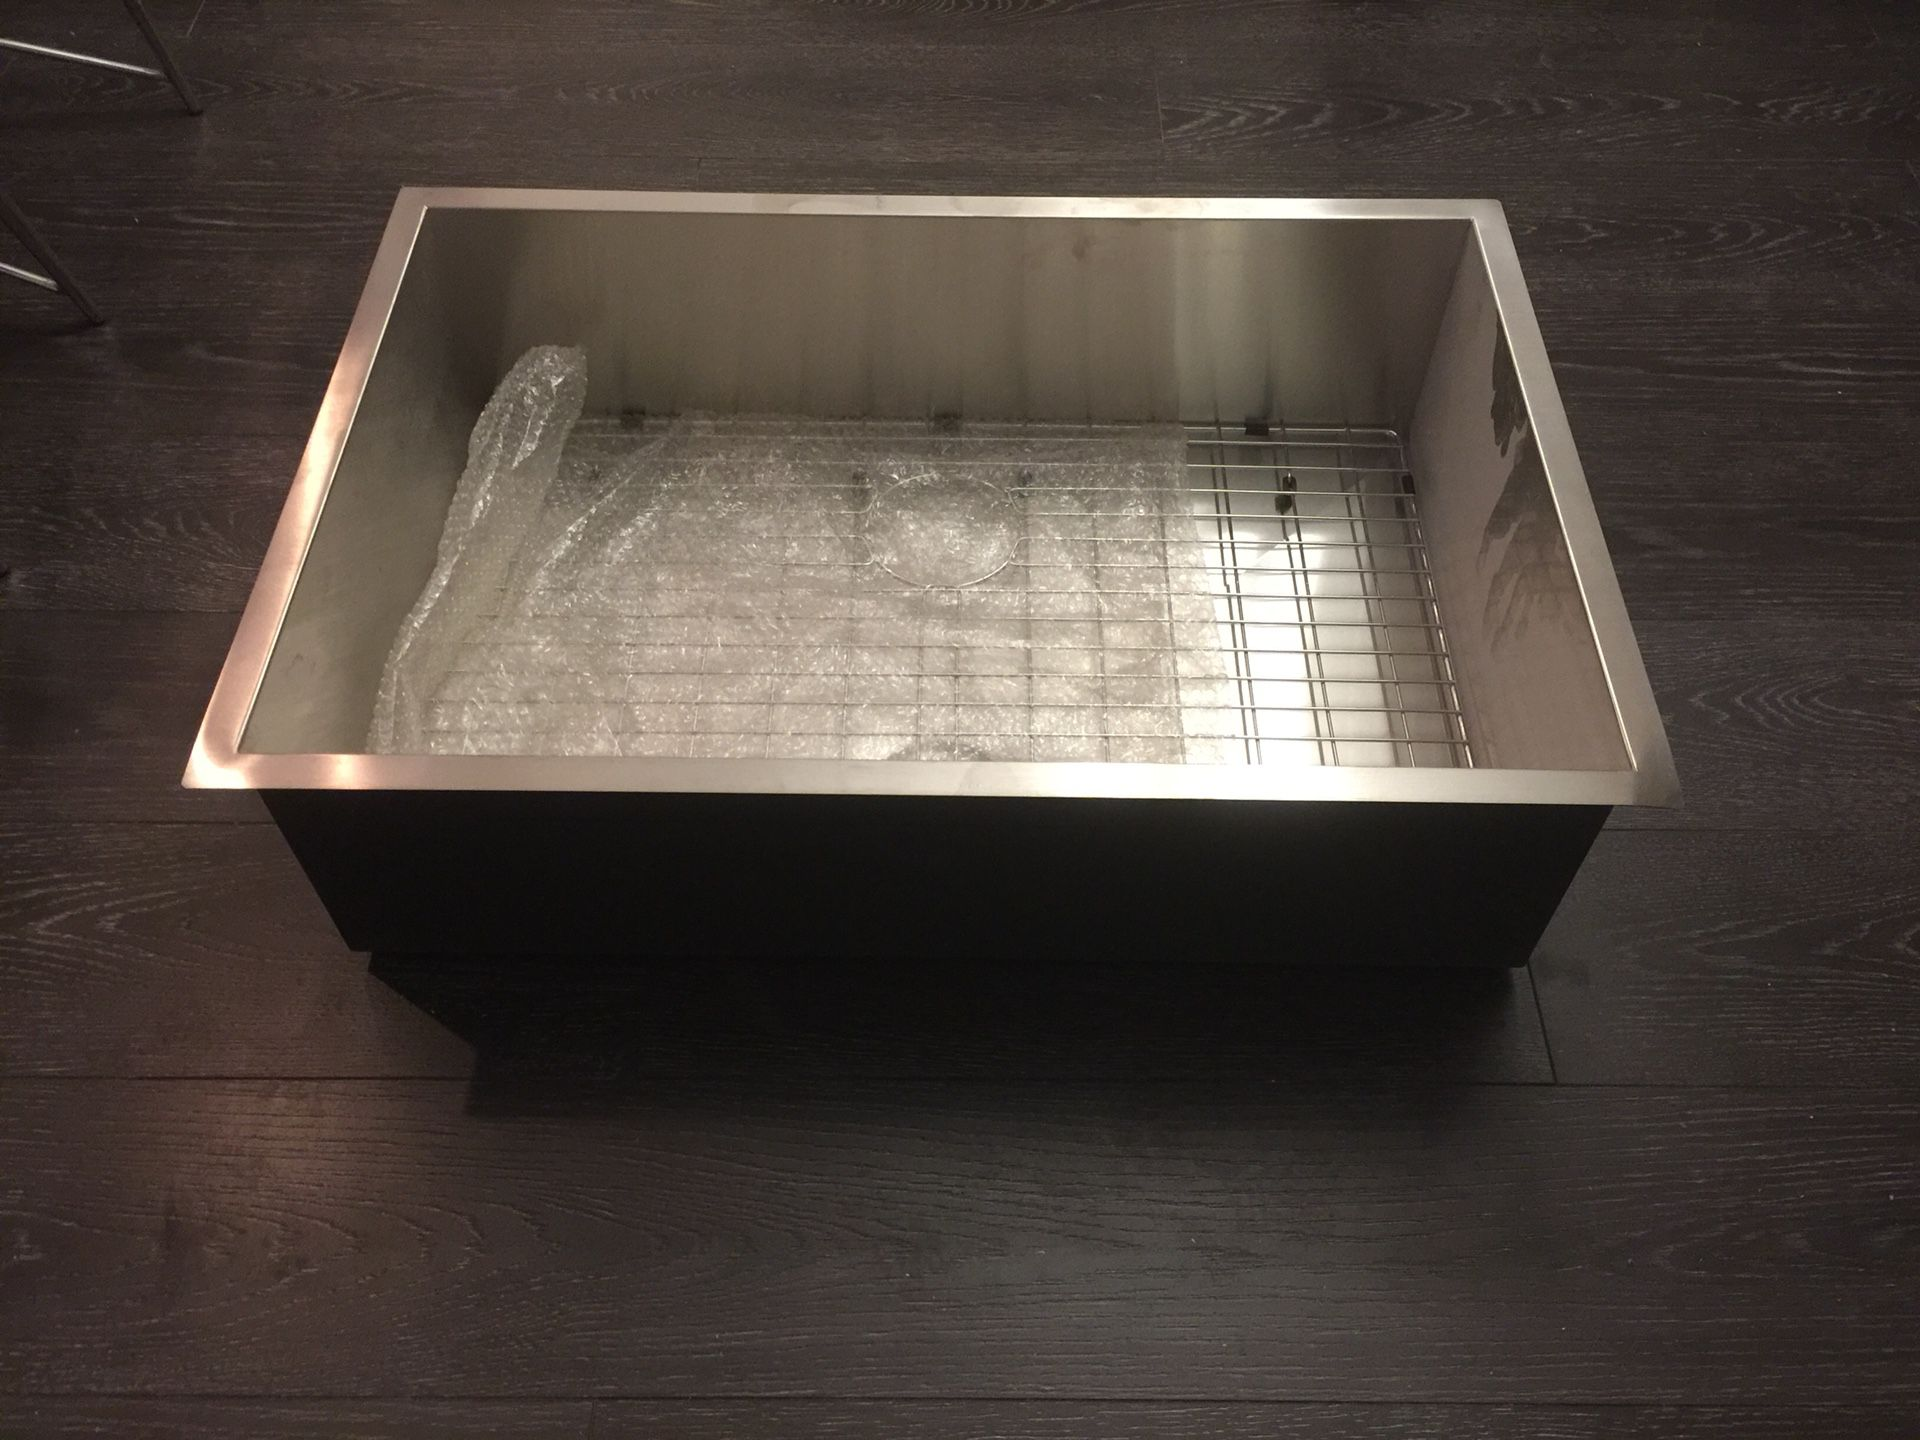 """New Large Undermount Stainless Steel Sink 33""""x22""""x9"""" with sink grate and drain"""